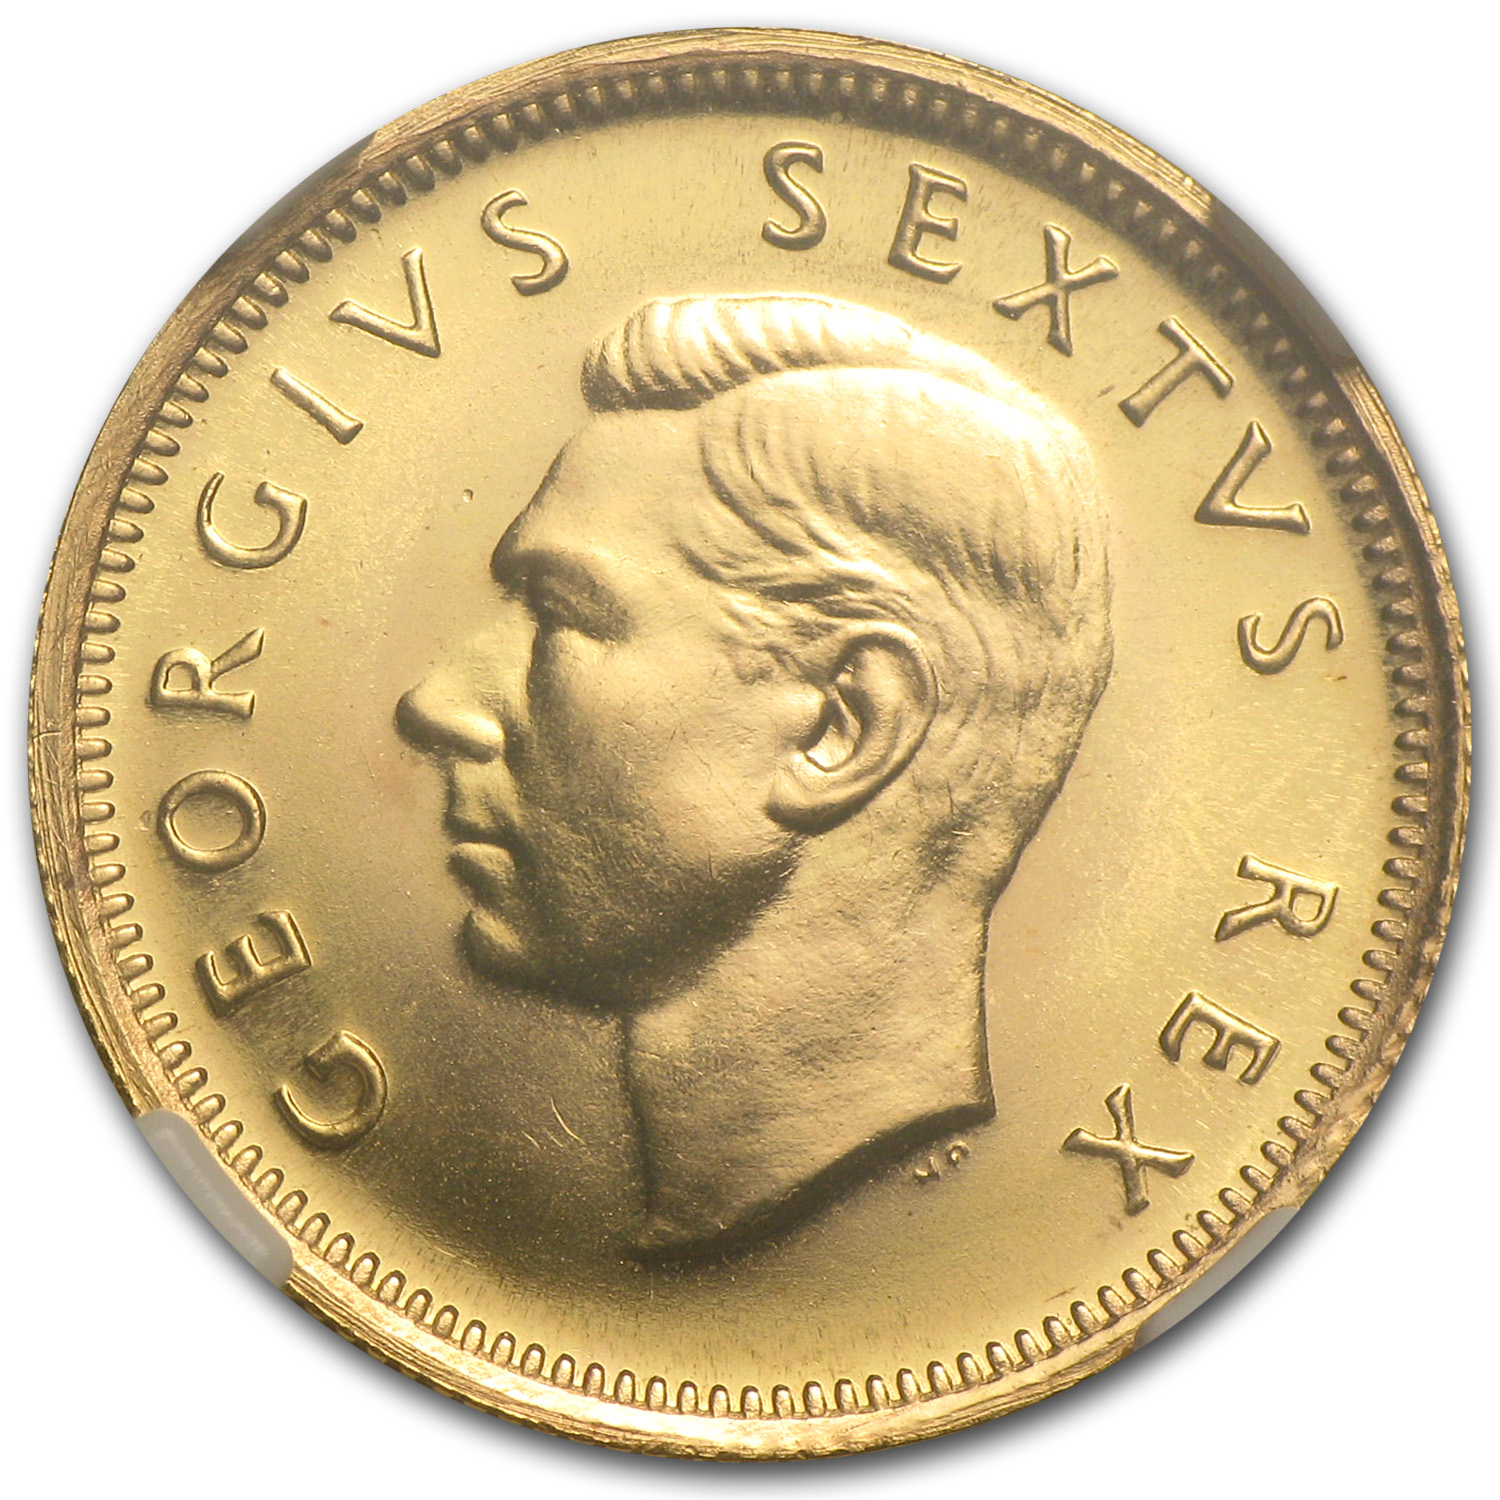 1952 South Africa Gold 1/2 Pound George VI PF-67 NGC